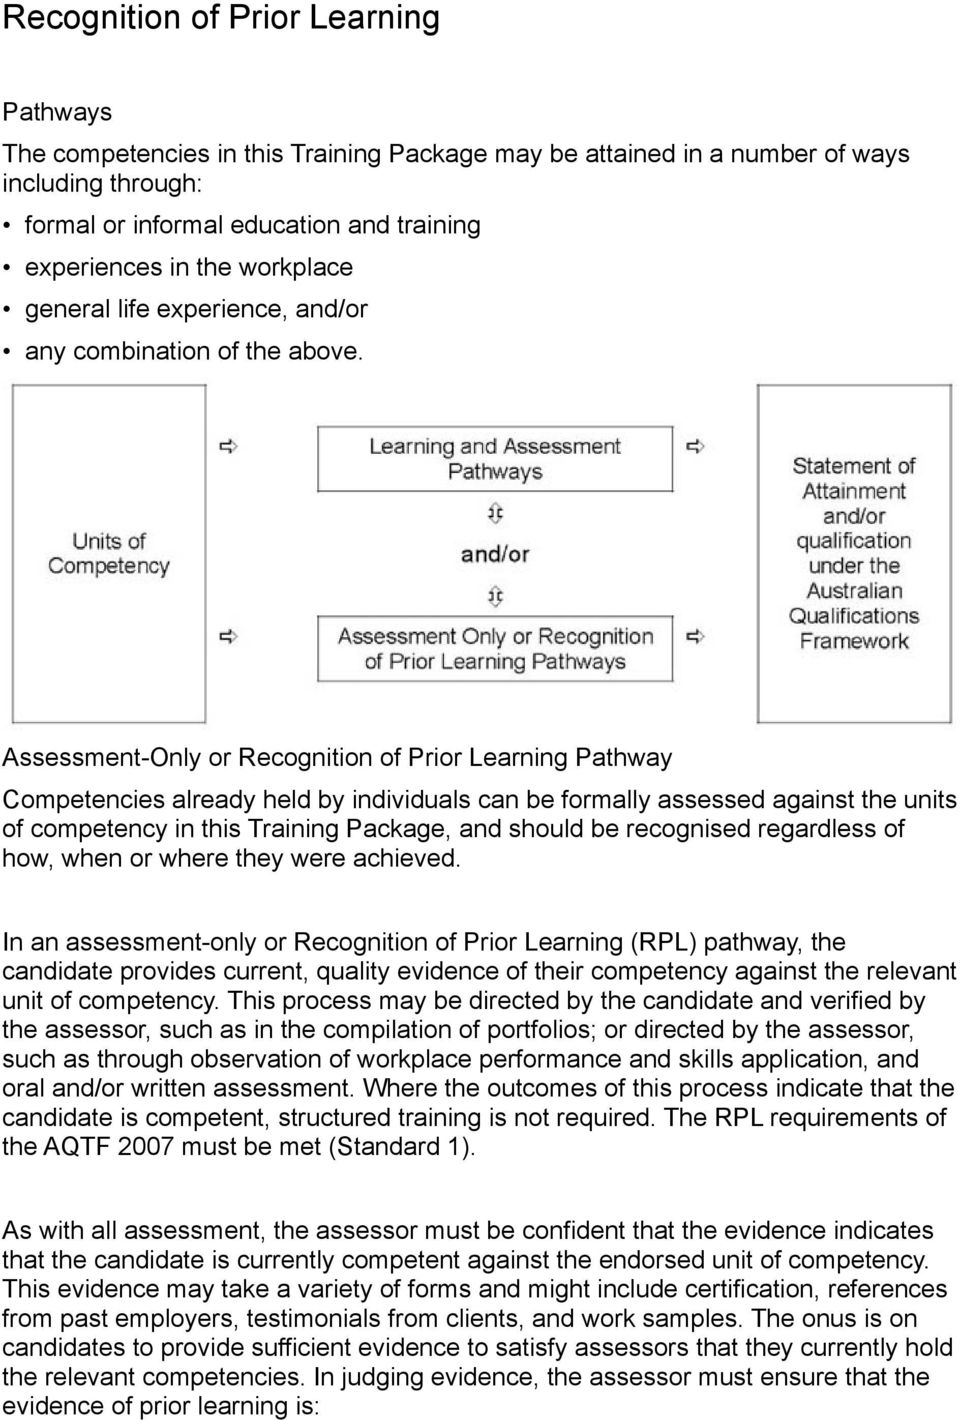 Assessment-Only or Recognition of Prior Learning Pathway Competencies already held by individuals can be formally assessed against the units of competency in this Training Package, and should be